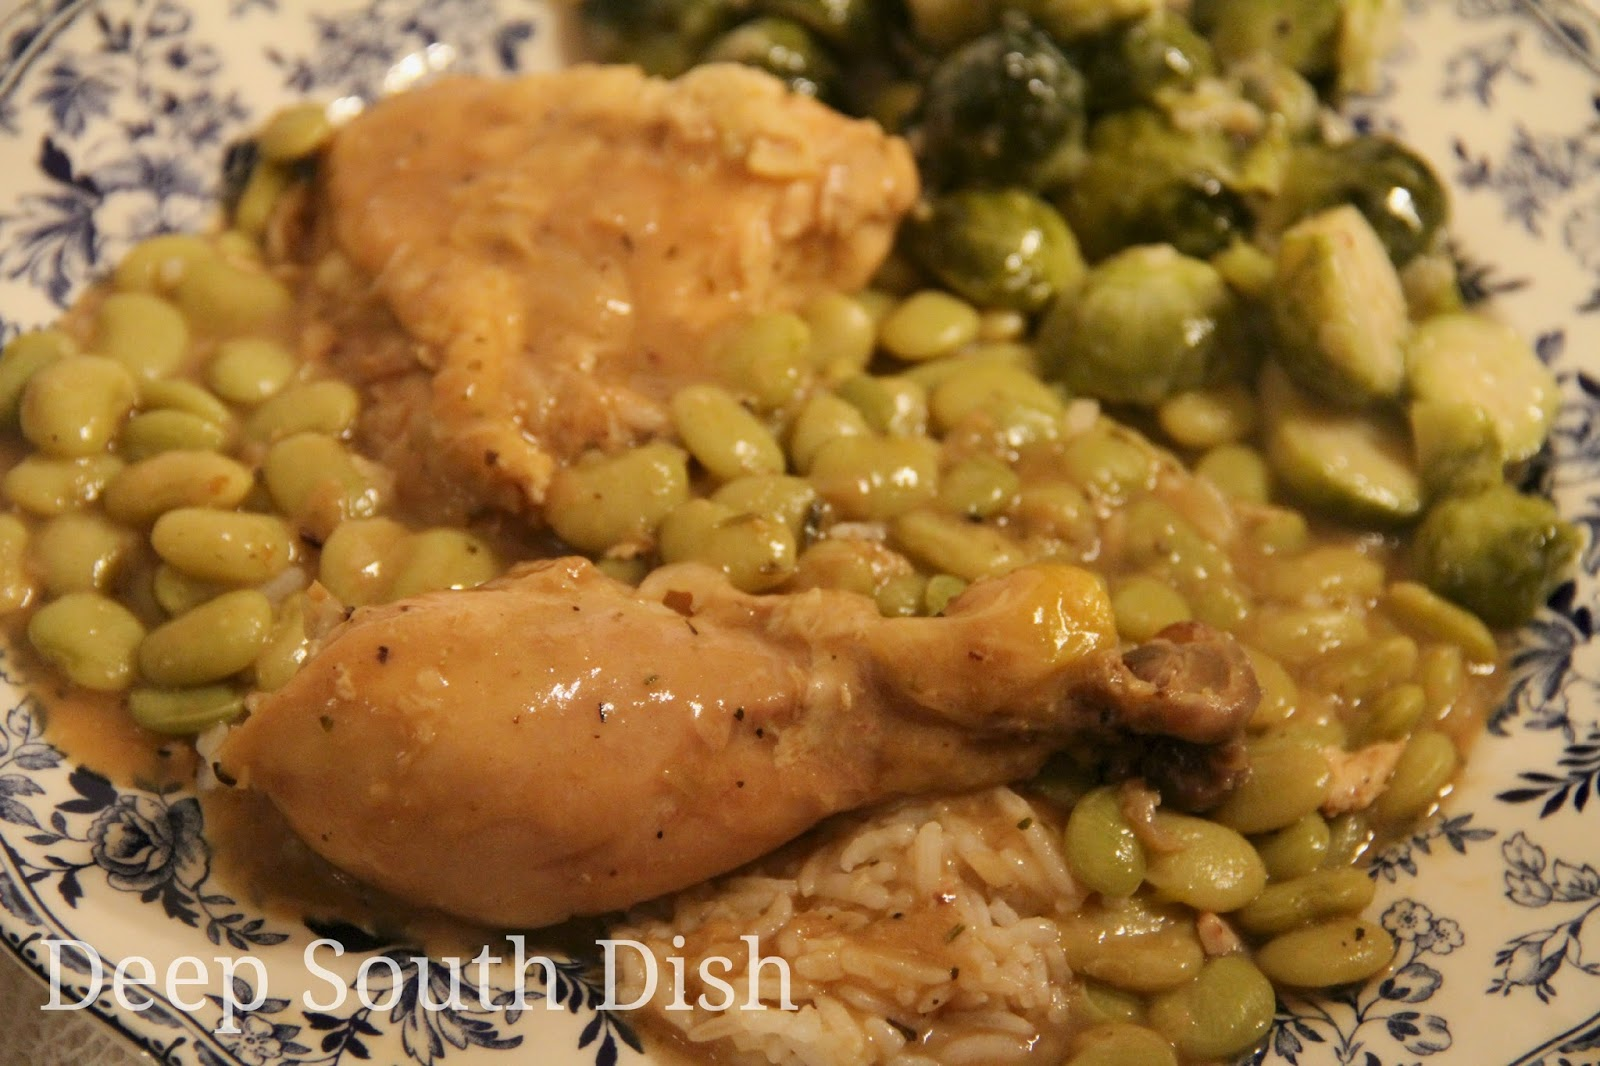 Deep South Dish Chicken And Butter Beans